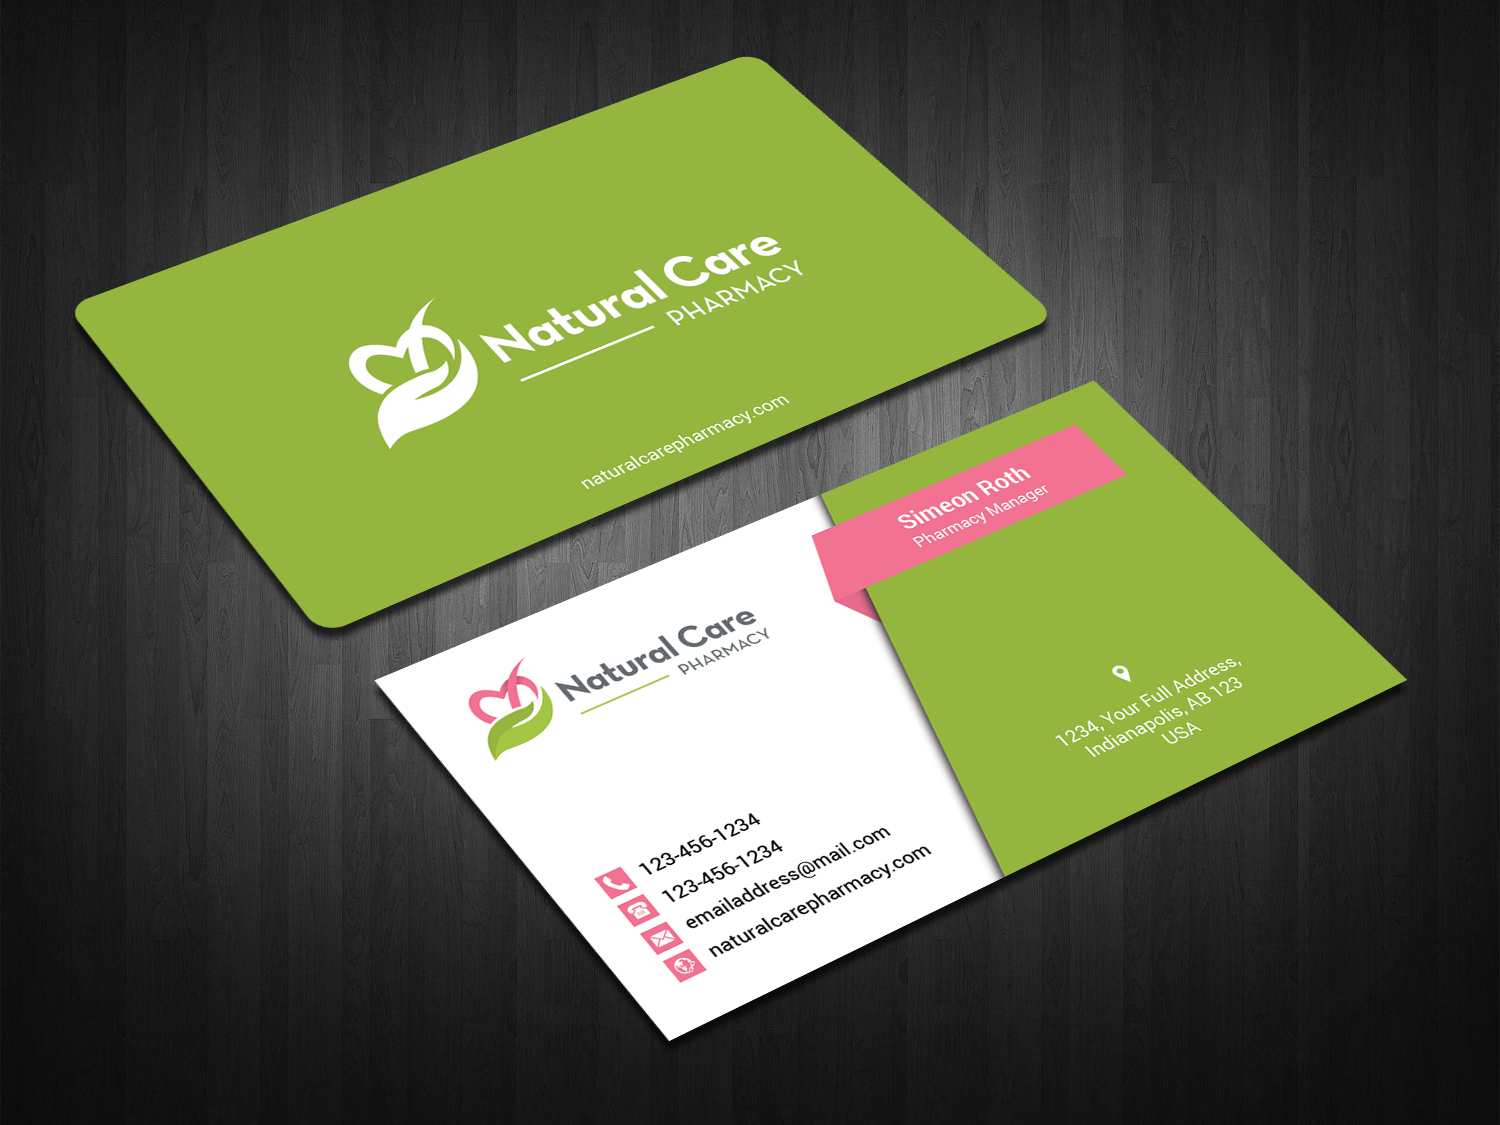 Elegant playful pharmacy business card design for a company by business card design by zahidrabbygc for this project design 18539263 reheart Choice Image